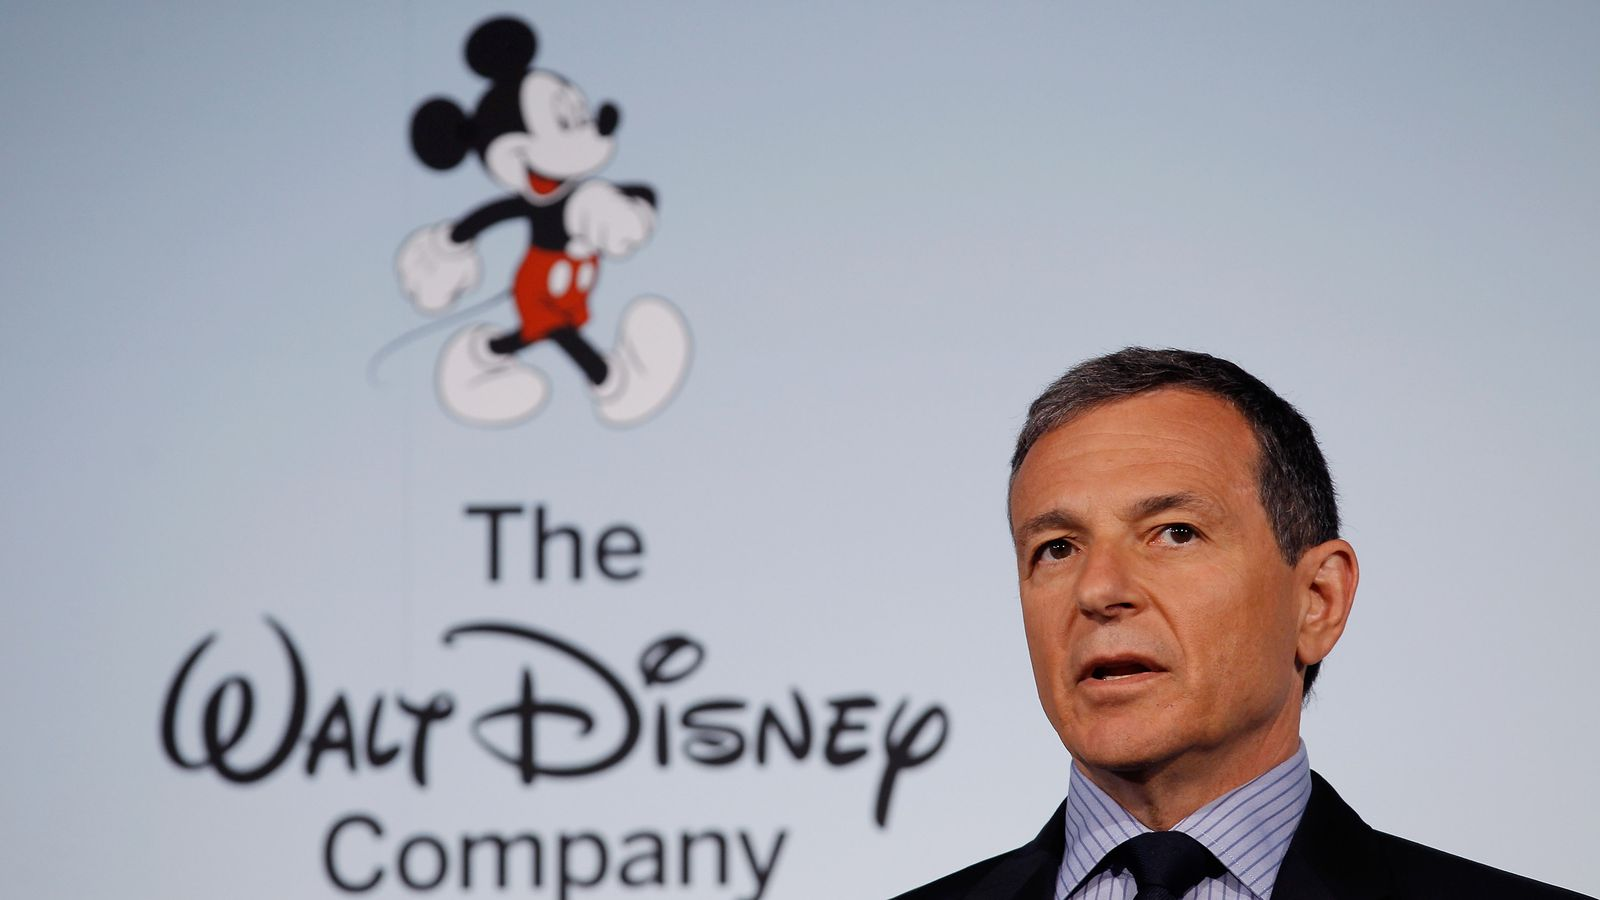 an analysis of bob igers management of the walt disney company Riding a wave of unprecedented success, the walt disney company's board of directors announced today that it has extended robert a iger's contract as chairman and chief executive officer of.